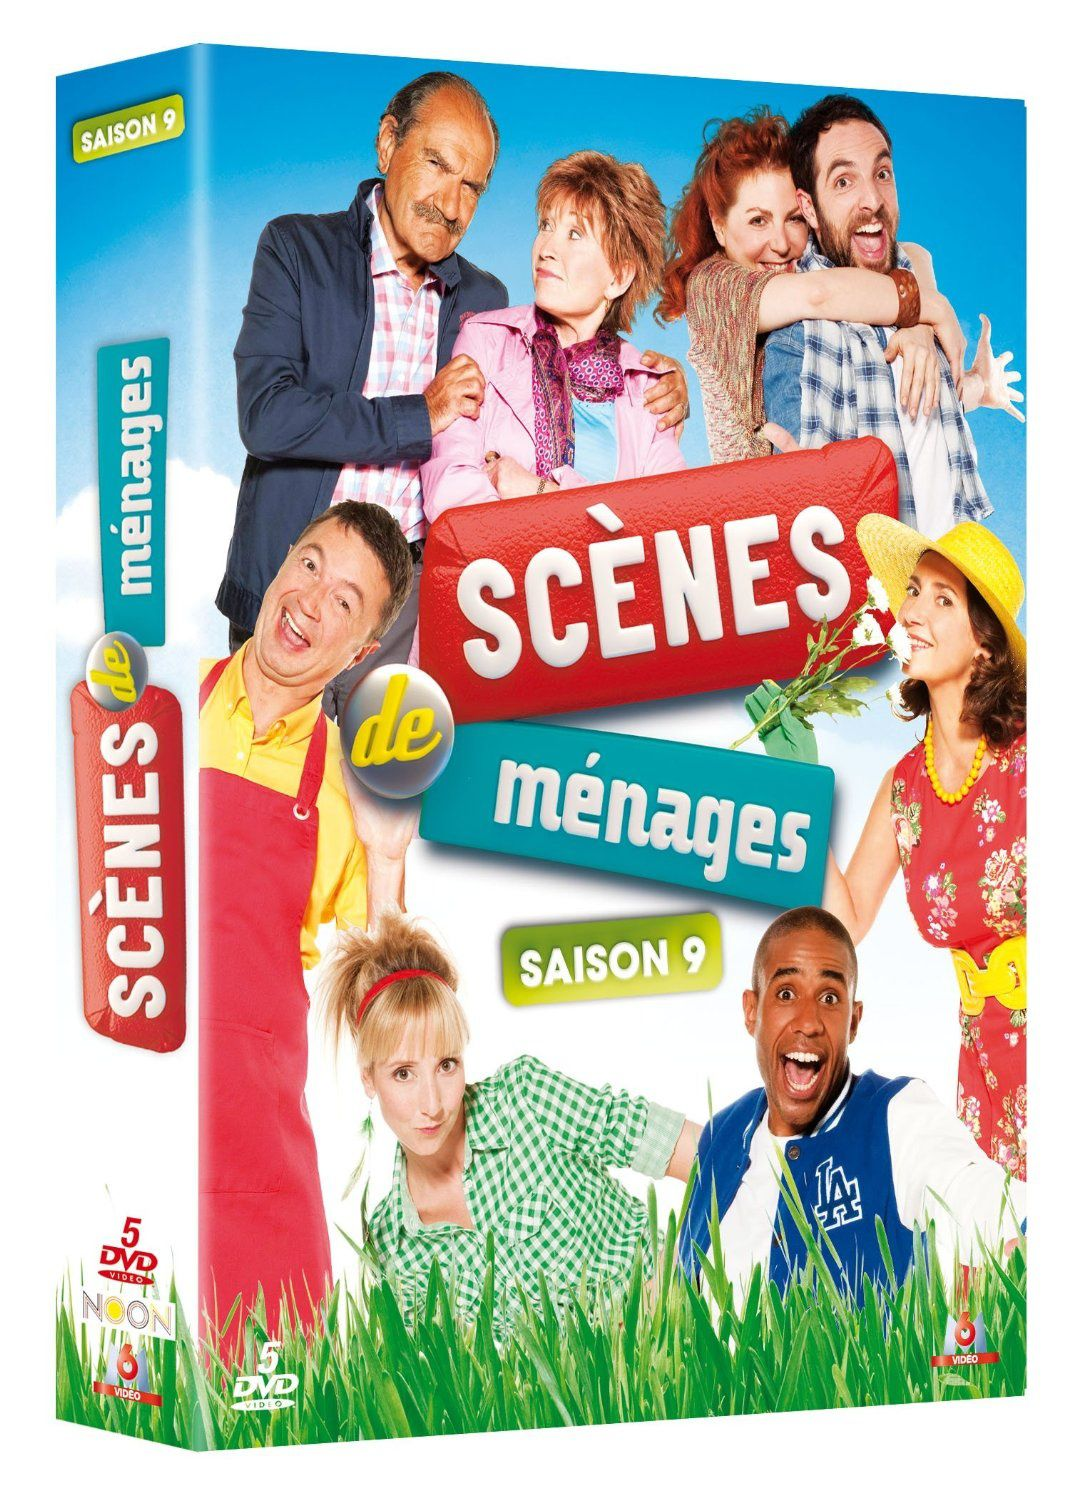 Scenes de ménages saison 9 en dvd